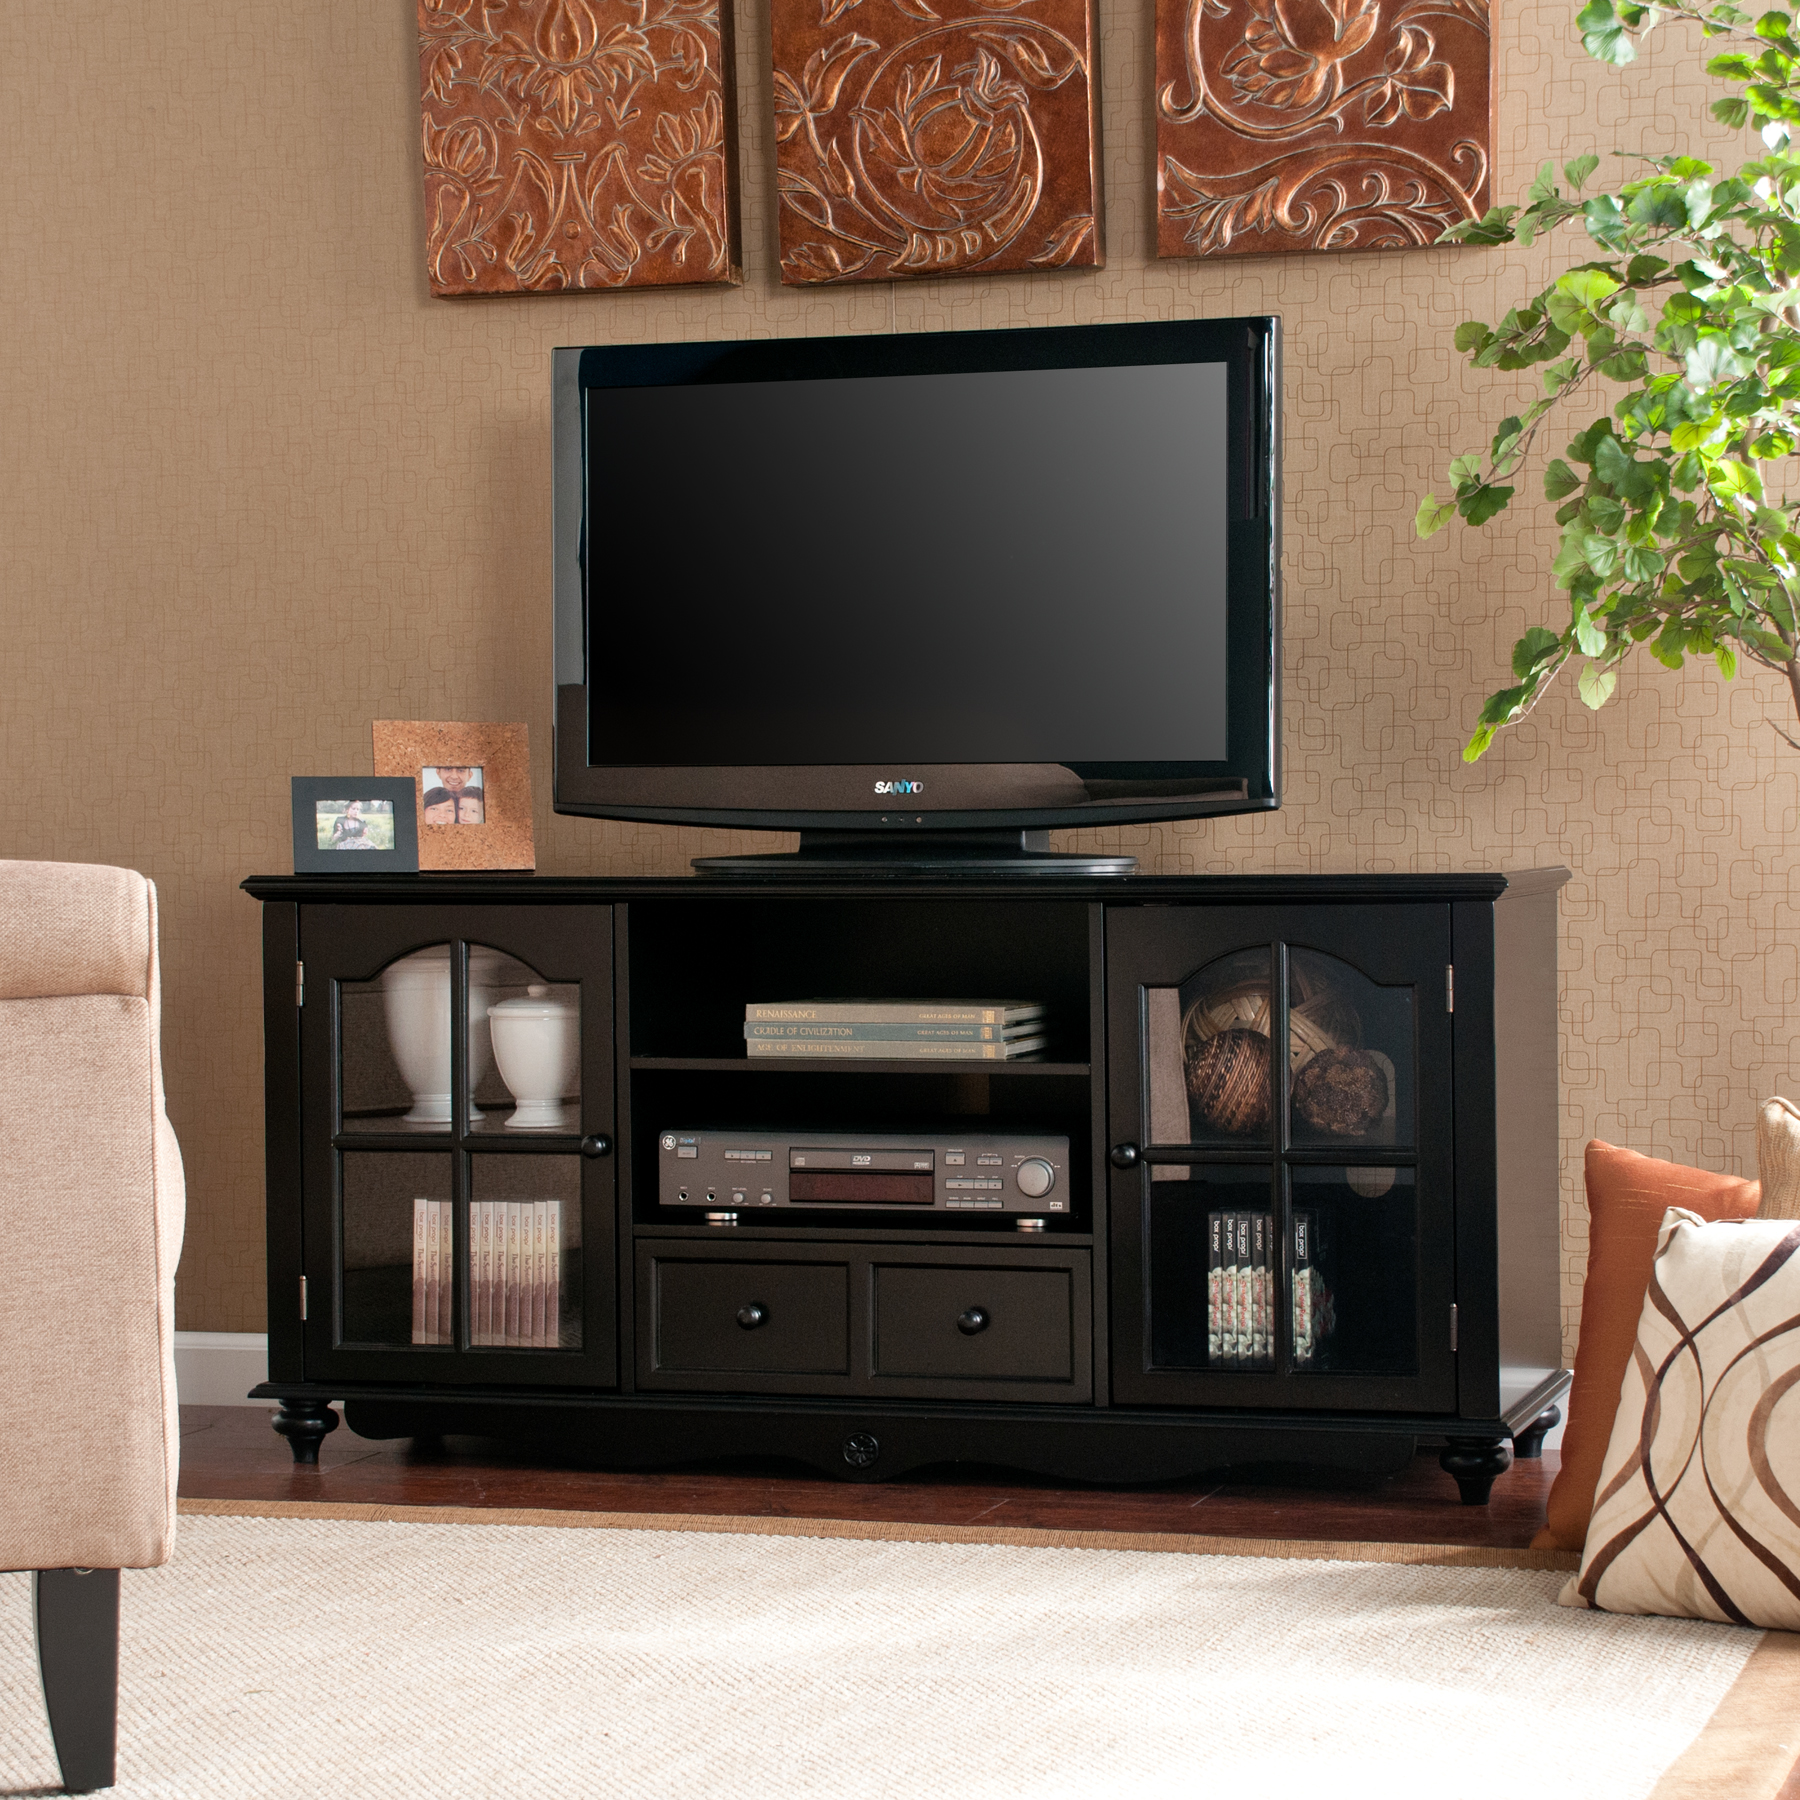 Tv Stands For Lcd Tvs Tv Stand Cart For Up To 55 Inch Plasma Led Lcd Tvs